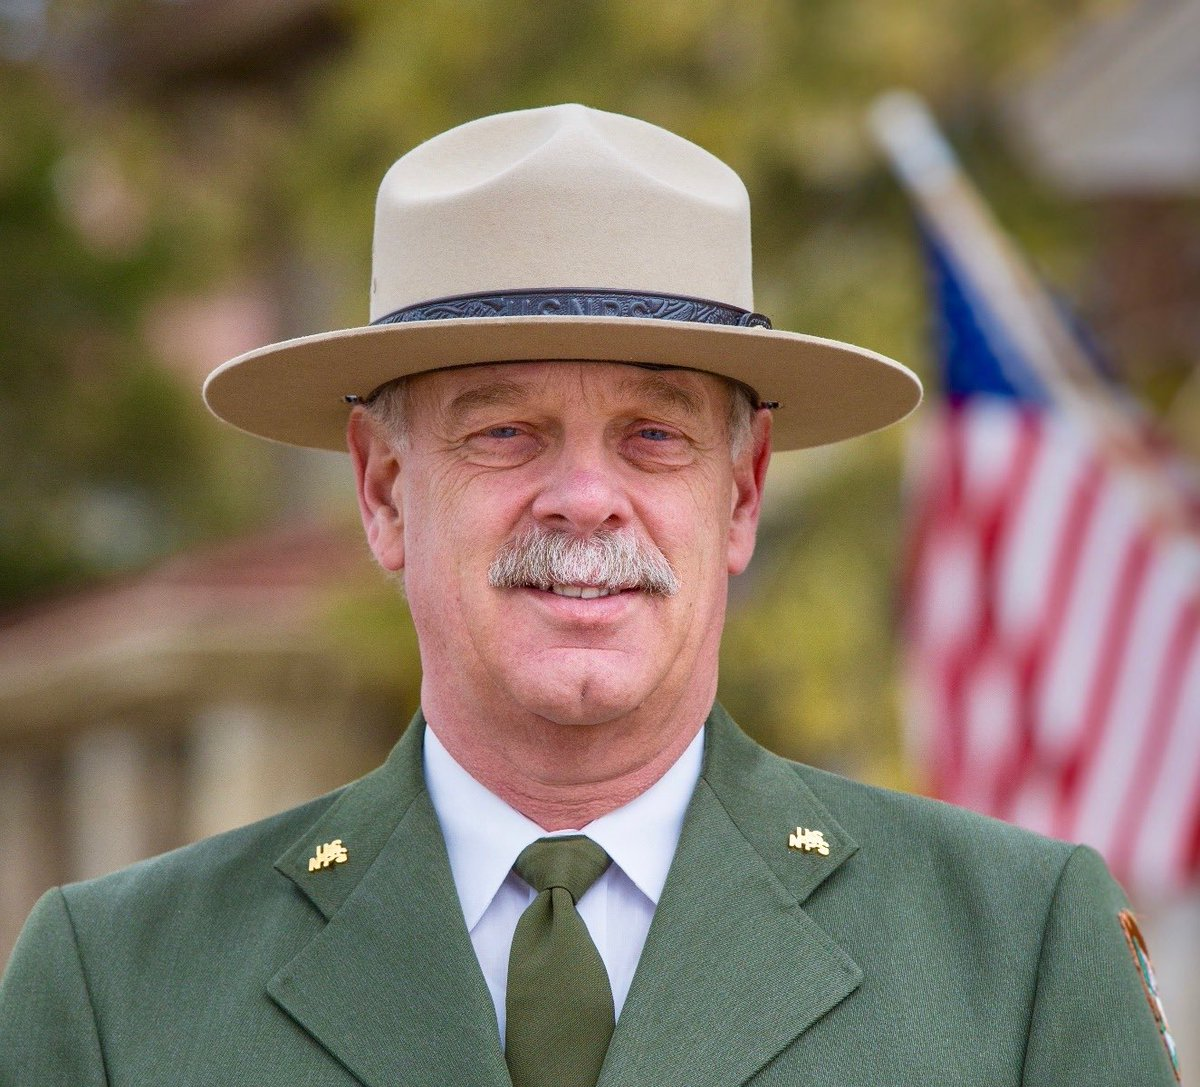 Despite Yellowstone Superintendent Dan Wenk's desire to end his 42-year-career in America's first national park, Ryan Zinke's Interior Department still demands he leave: mountainjournal.org/chief-of-yello…